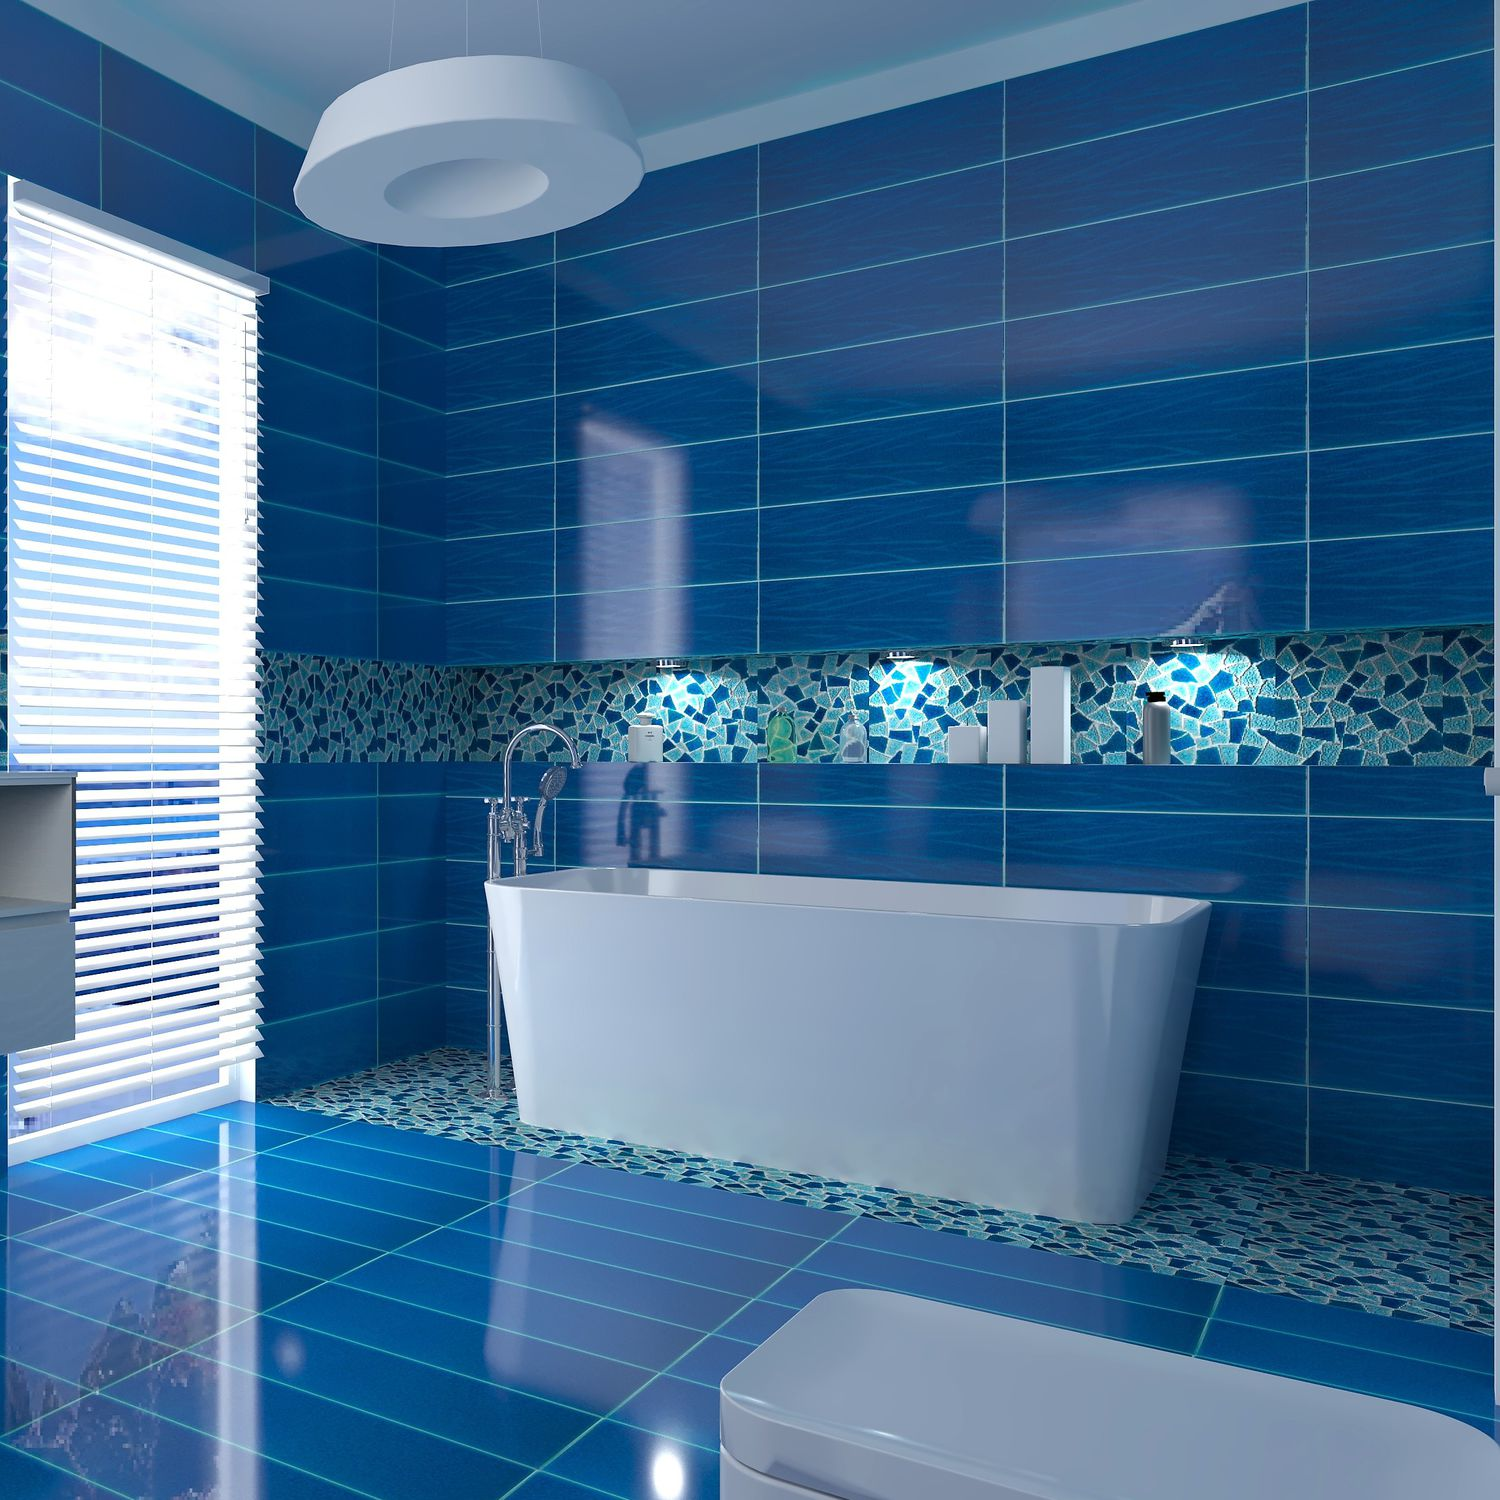 Bathroom tile / wall / for floors / ceramic - CRAKL.È : OCEANI ...